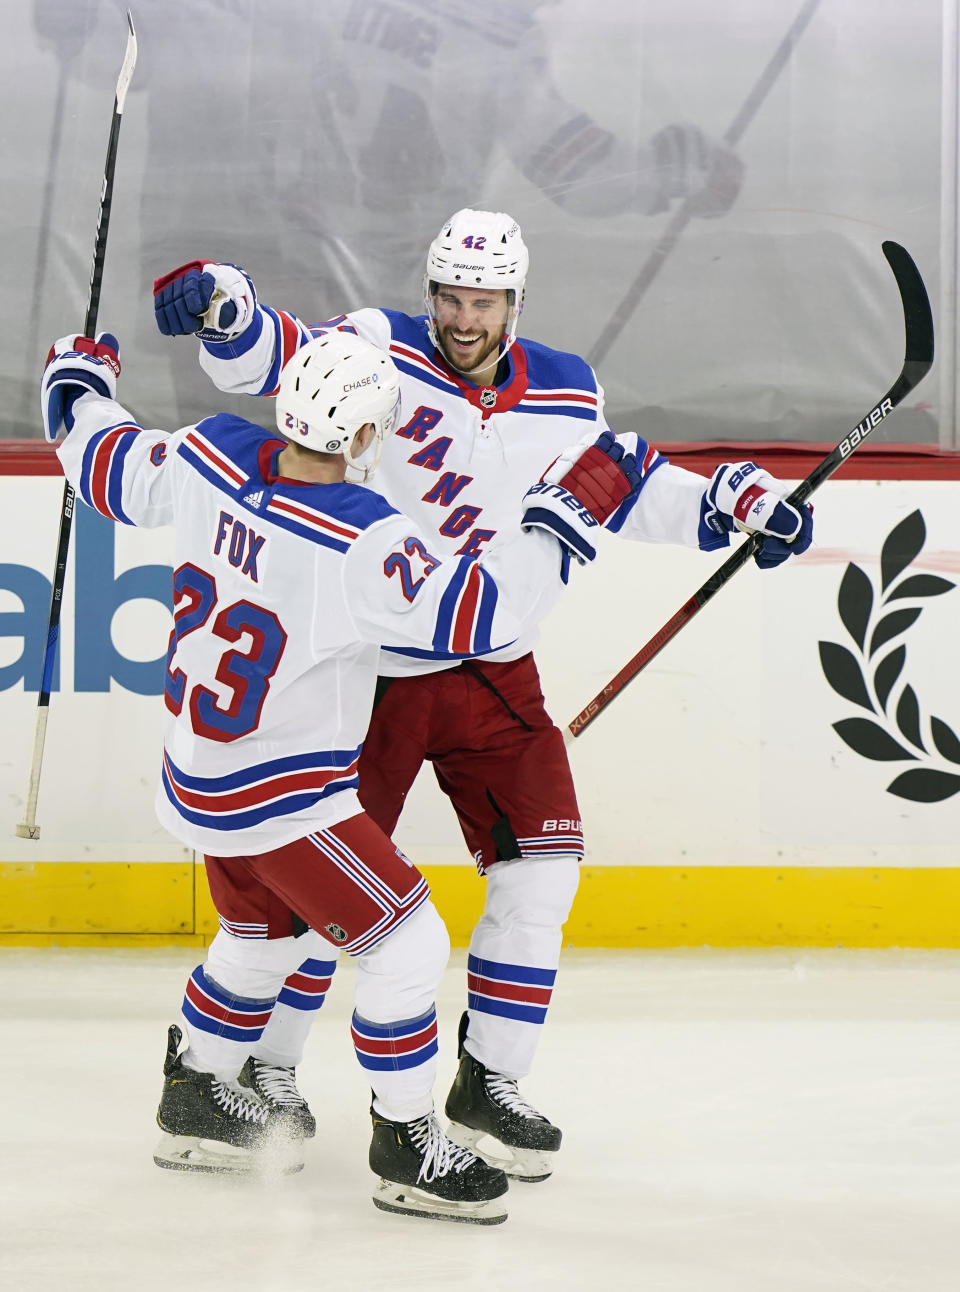 New York Rangers defenseman Brendan Smith (42) celebrates with Rangers defenseman Adam Fox (23) after scoring a goal during the third period of an NHL hockey game against the New Jersey Devils, Thursday, March 4, 2021, in Newark, N.J. (AP Photo/Kathy Willens)